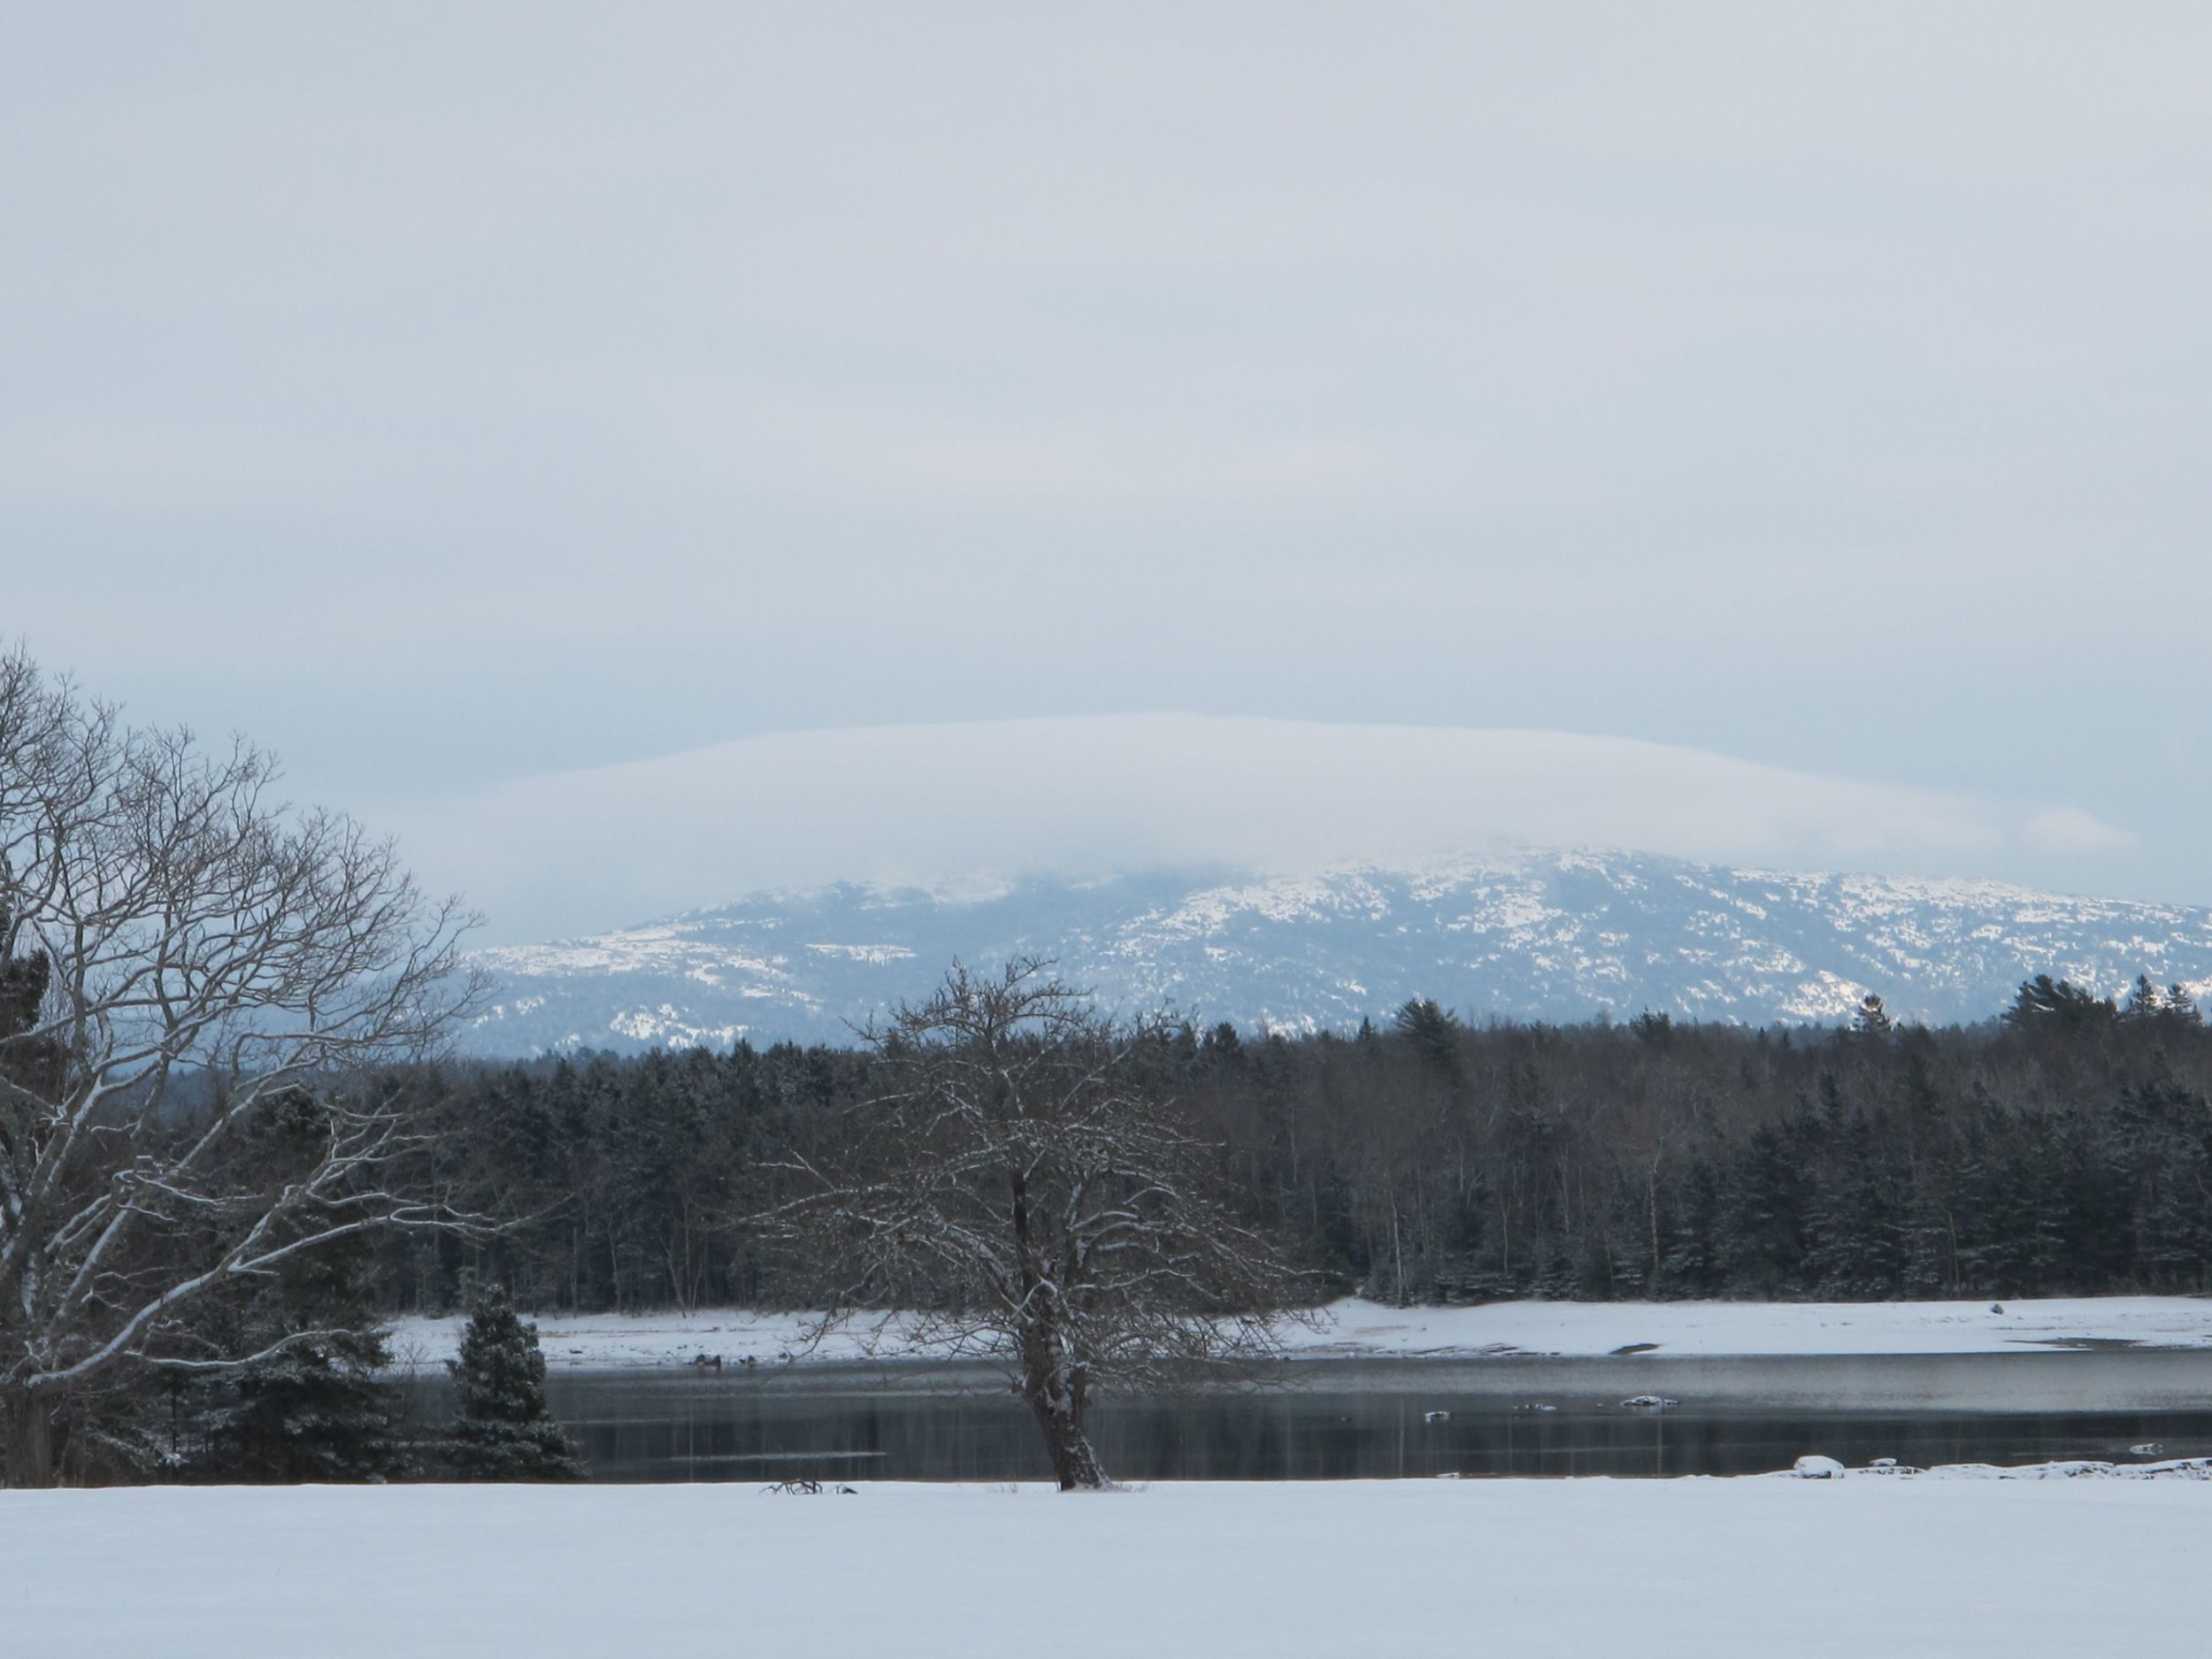 No, the snow isn't 100 feet deep atop Cadillac Mountain, though it looked that way when we took a walk the other day. That white cap was just a cloud that crawled over the peak and moved on.